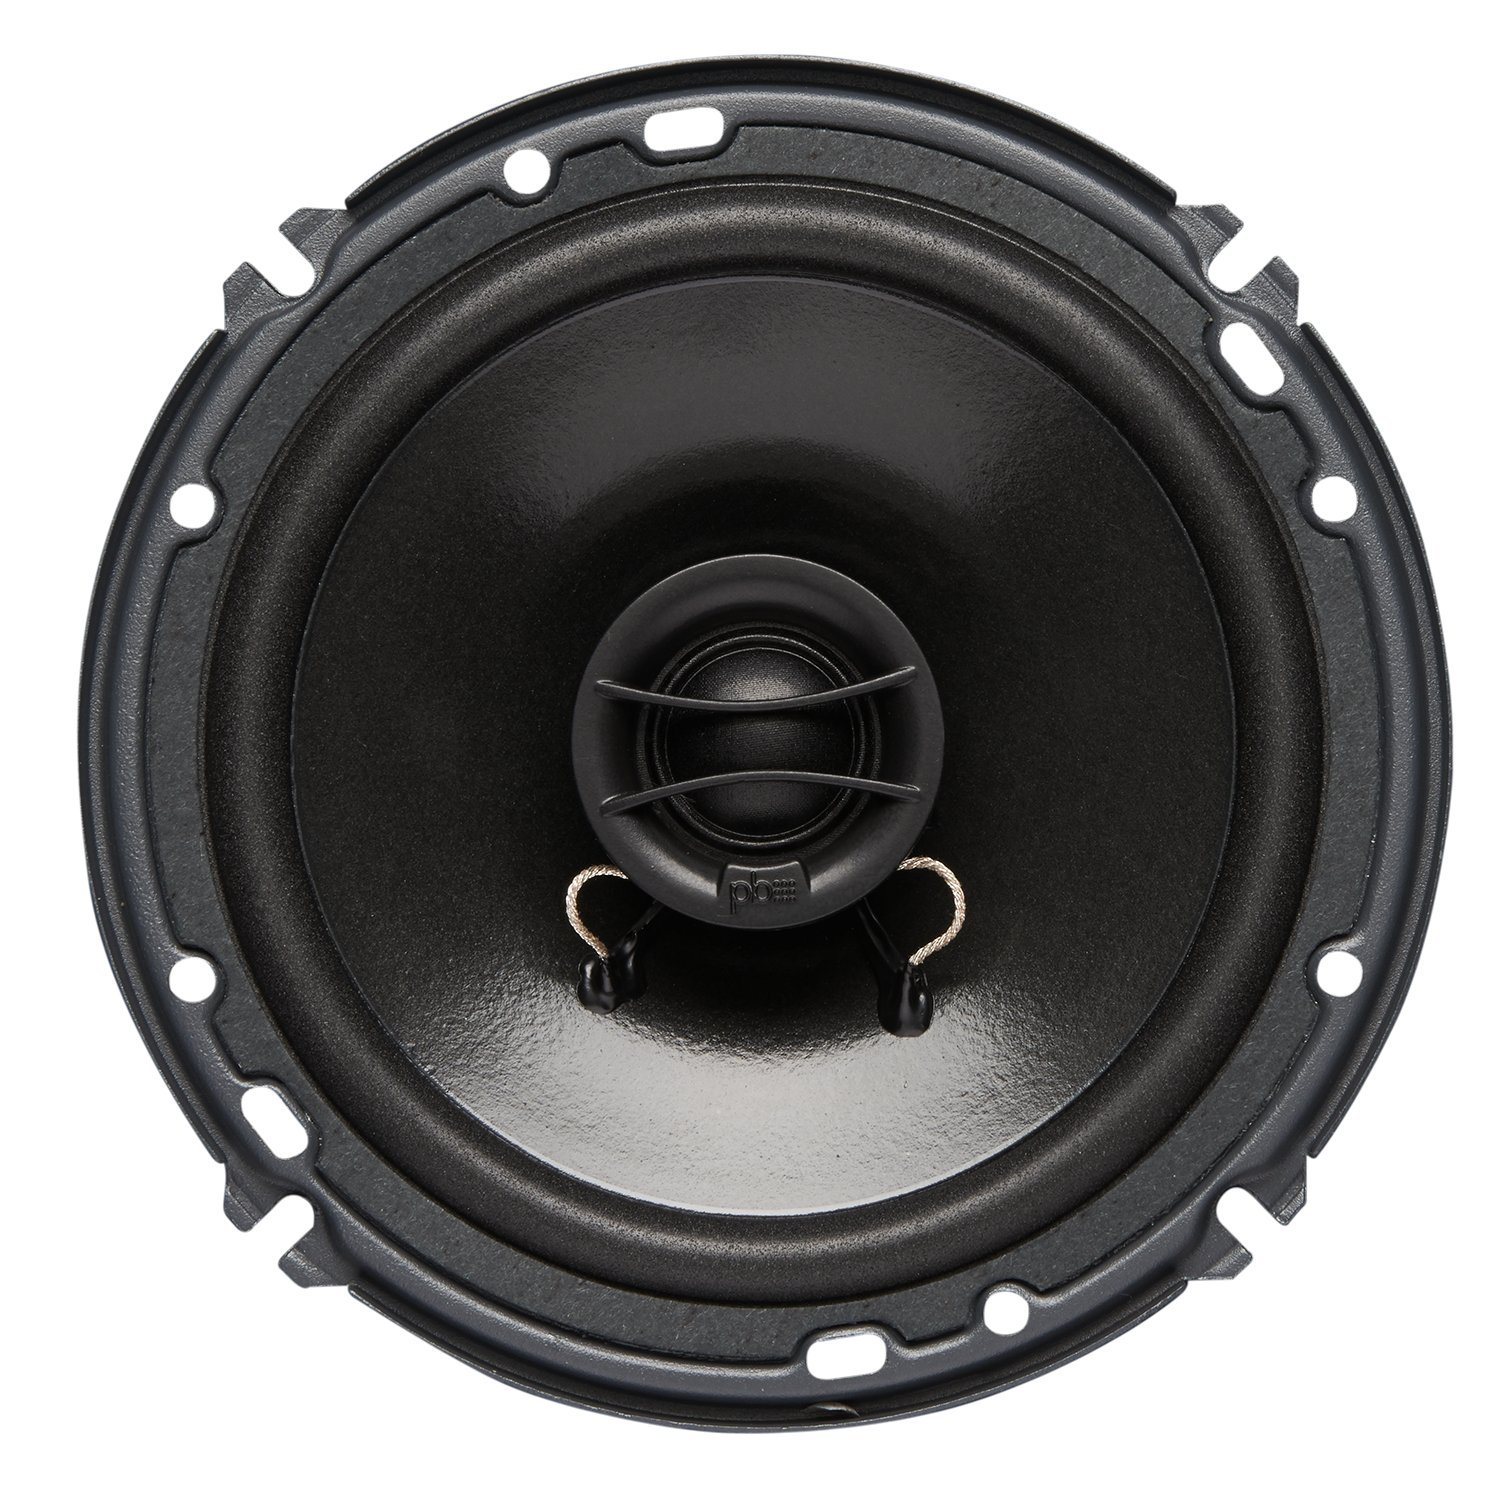 Amazon.com: Powerbass S-Series Full Range 4 Ω 6.75